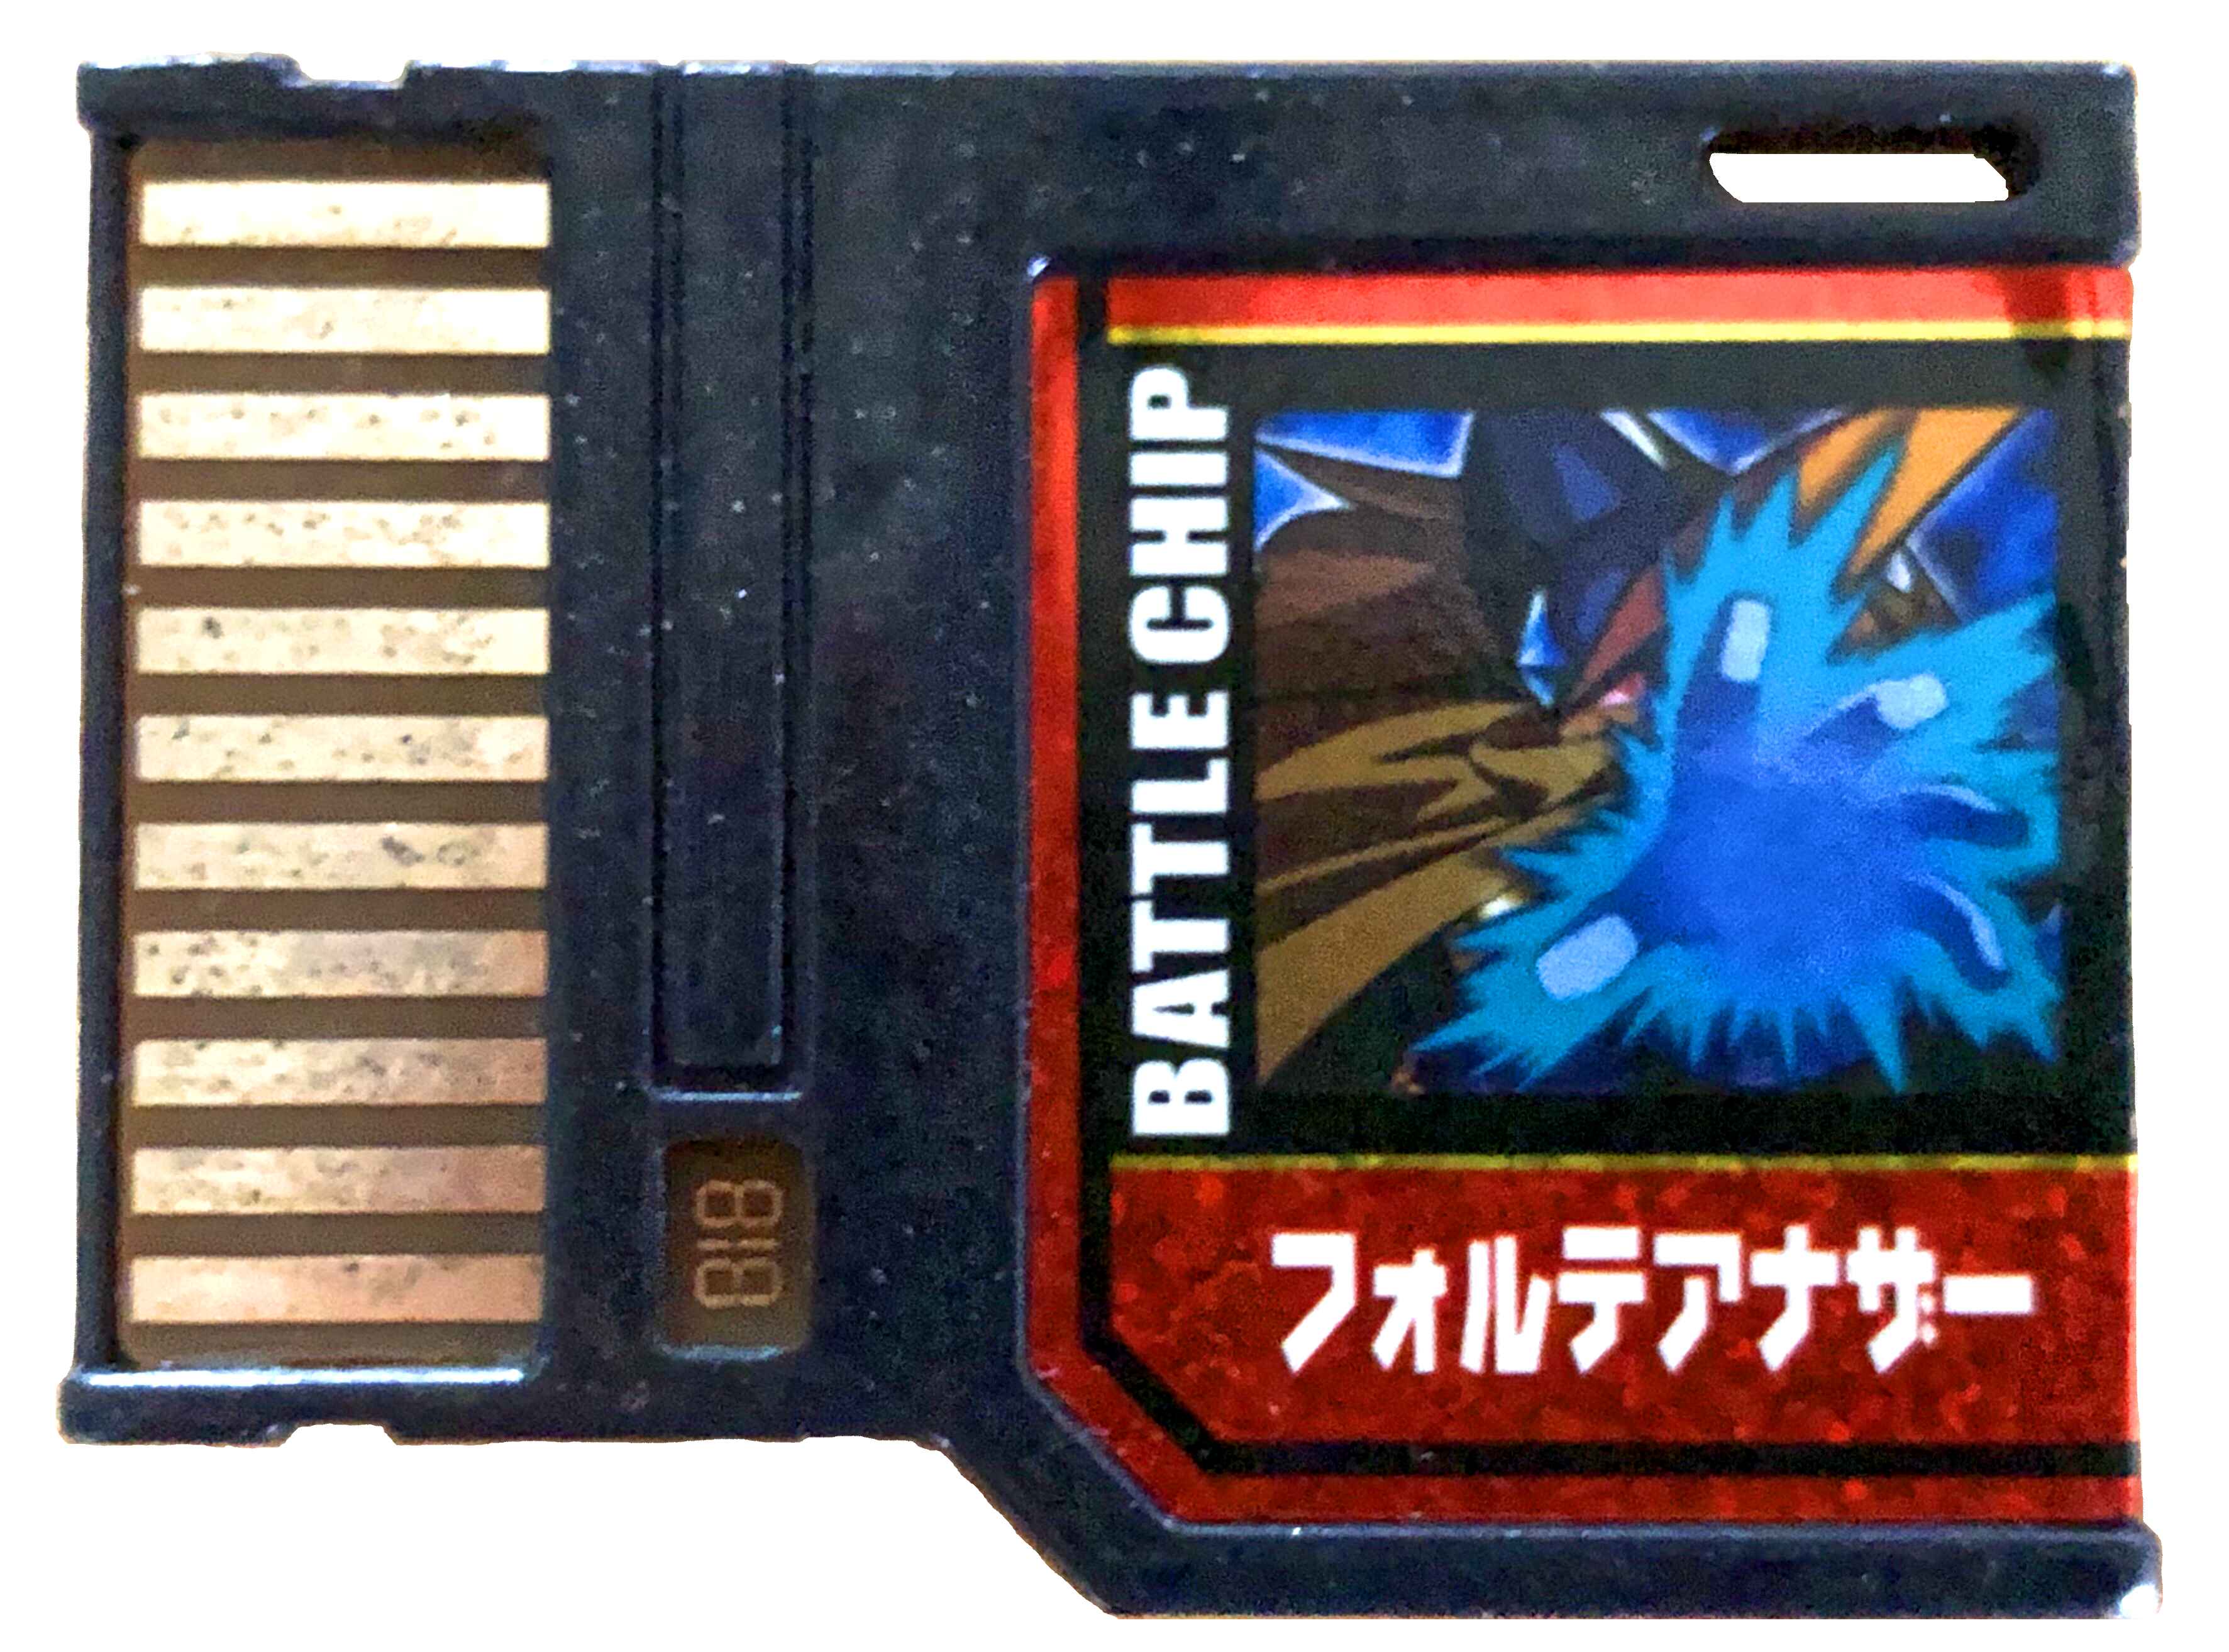 File:BattleChip818.png